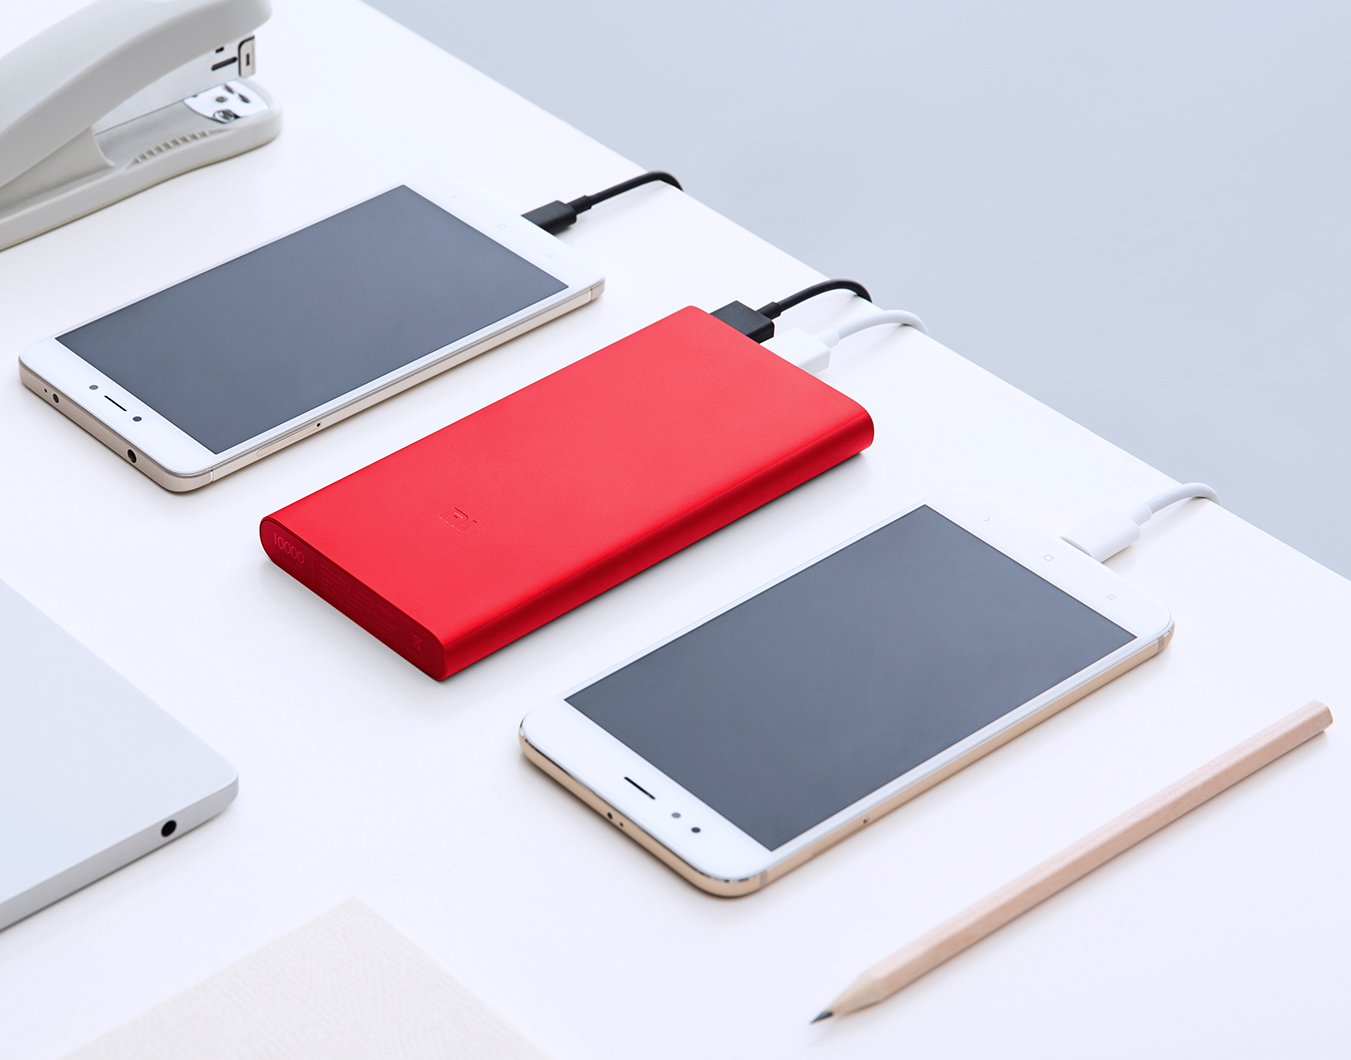 Mi Power Bank - Online available on Best Price - Mi India